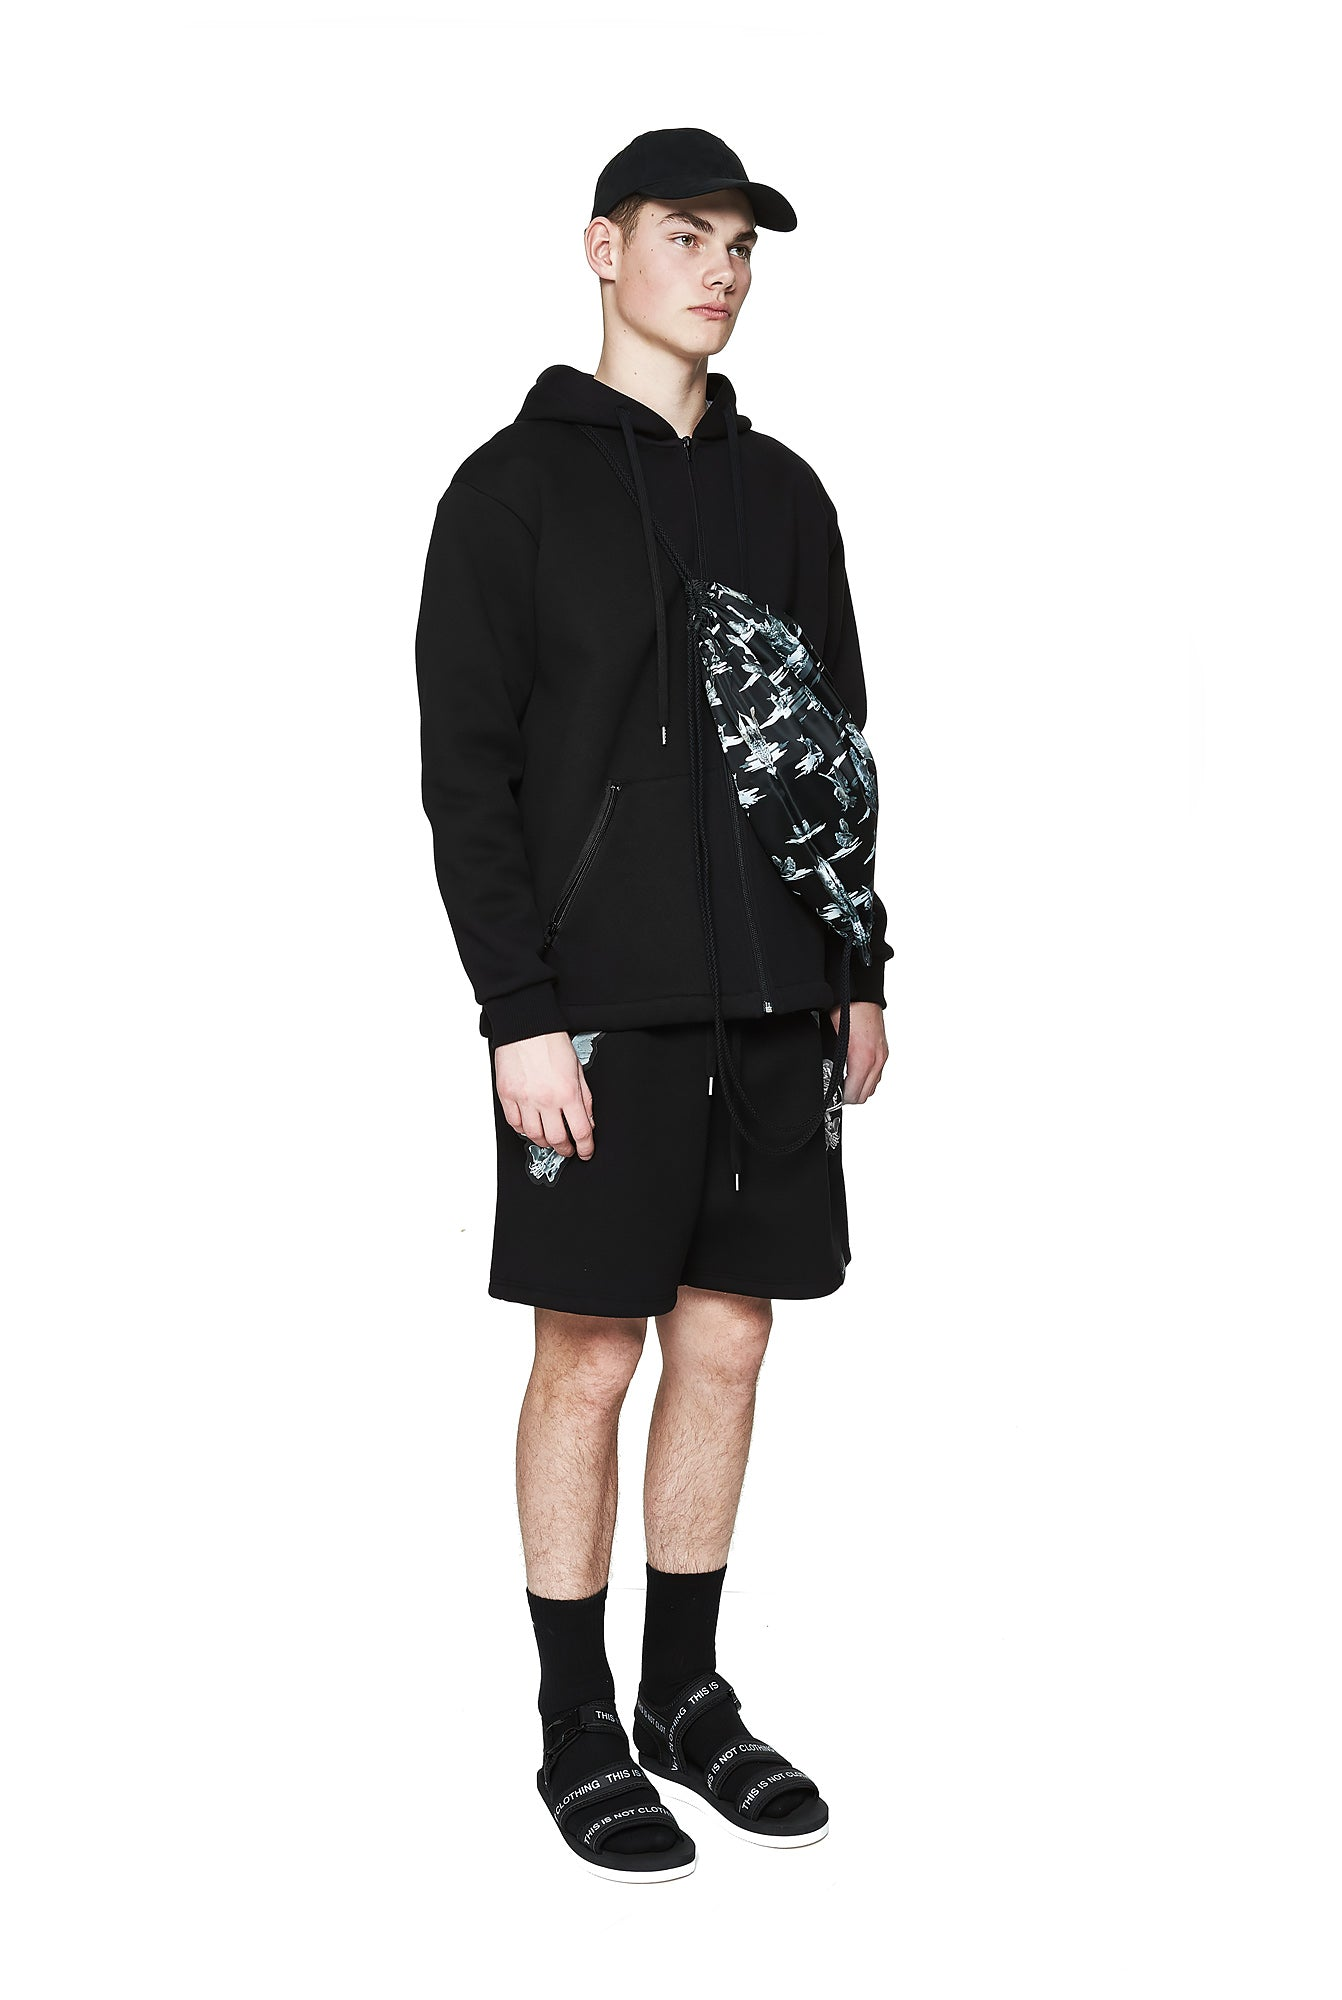 Fall of Paradise Hoodie - Designer Brand - This Is Not Clothing - Lookbook Photo 2